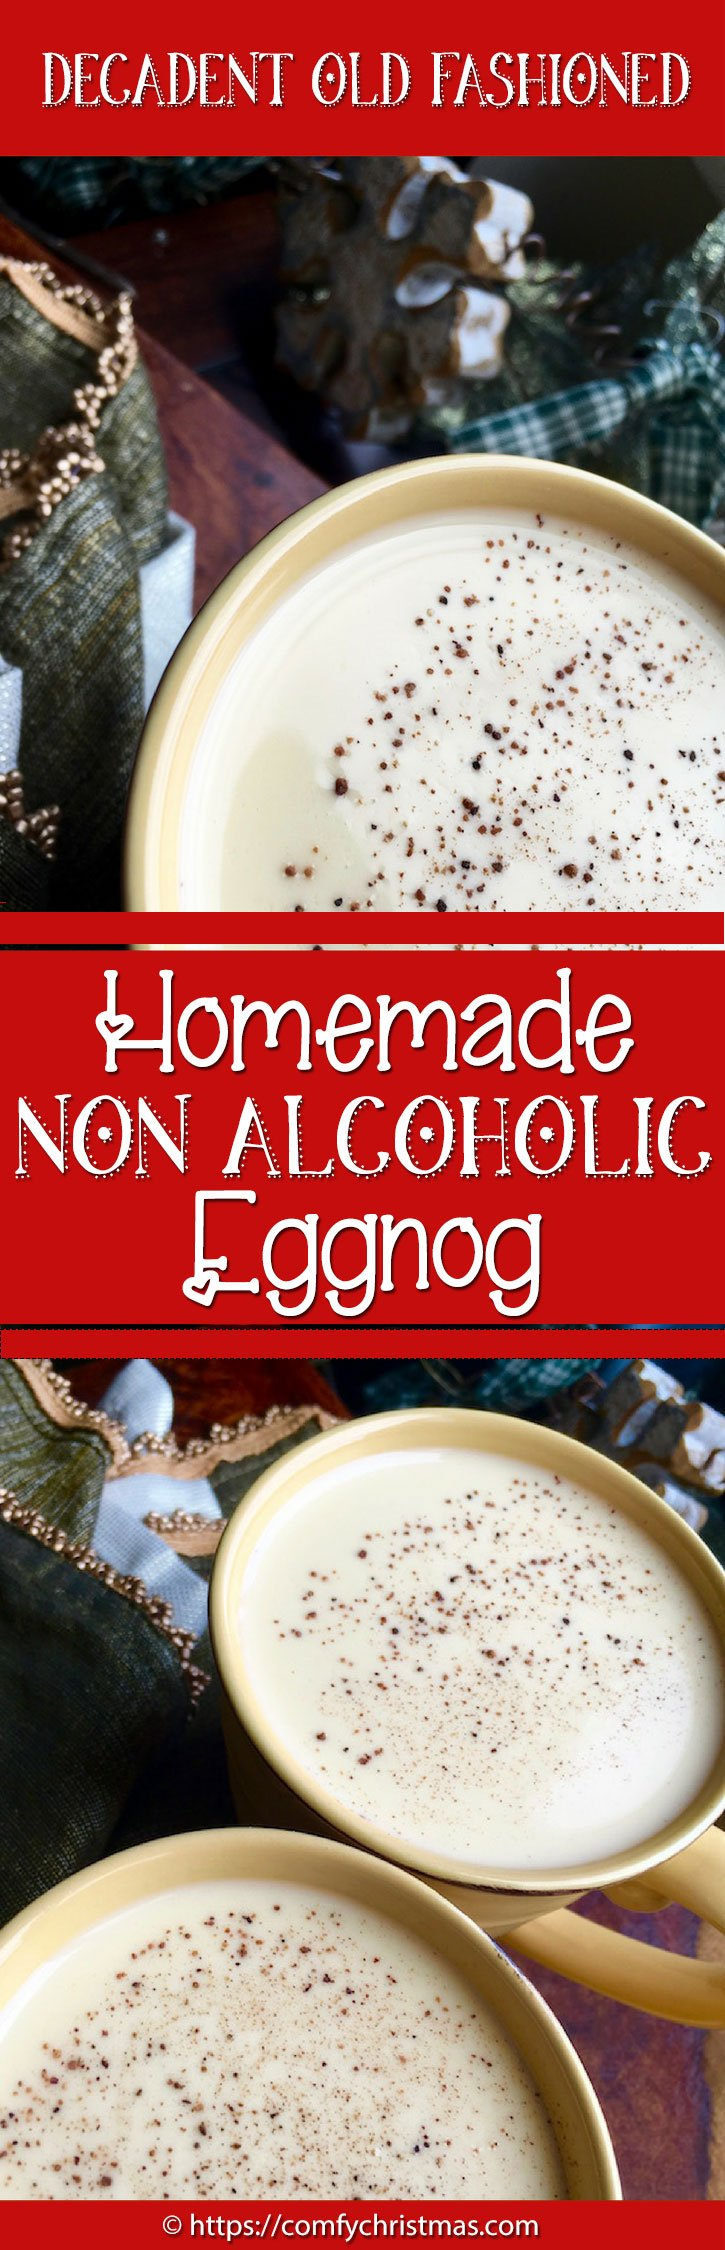 Homemade Non Alcoholic Eggnog Recipe